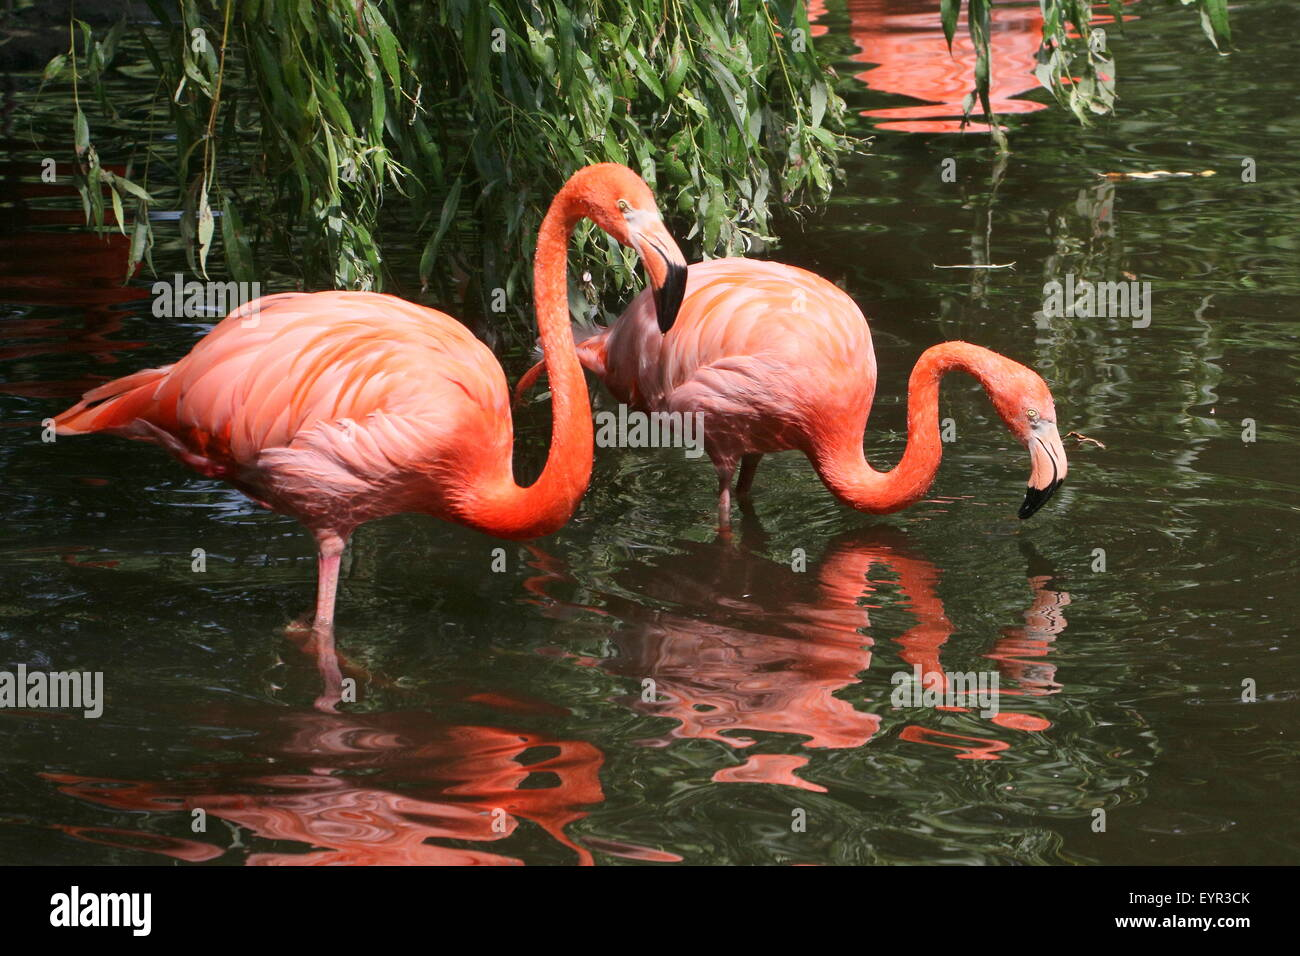 Two American or Caribbean flamingos (Phoenicopterus ruber) foraging in a stream - Stock Image